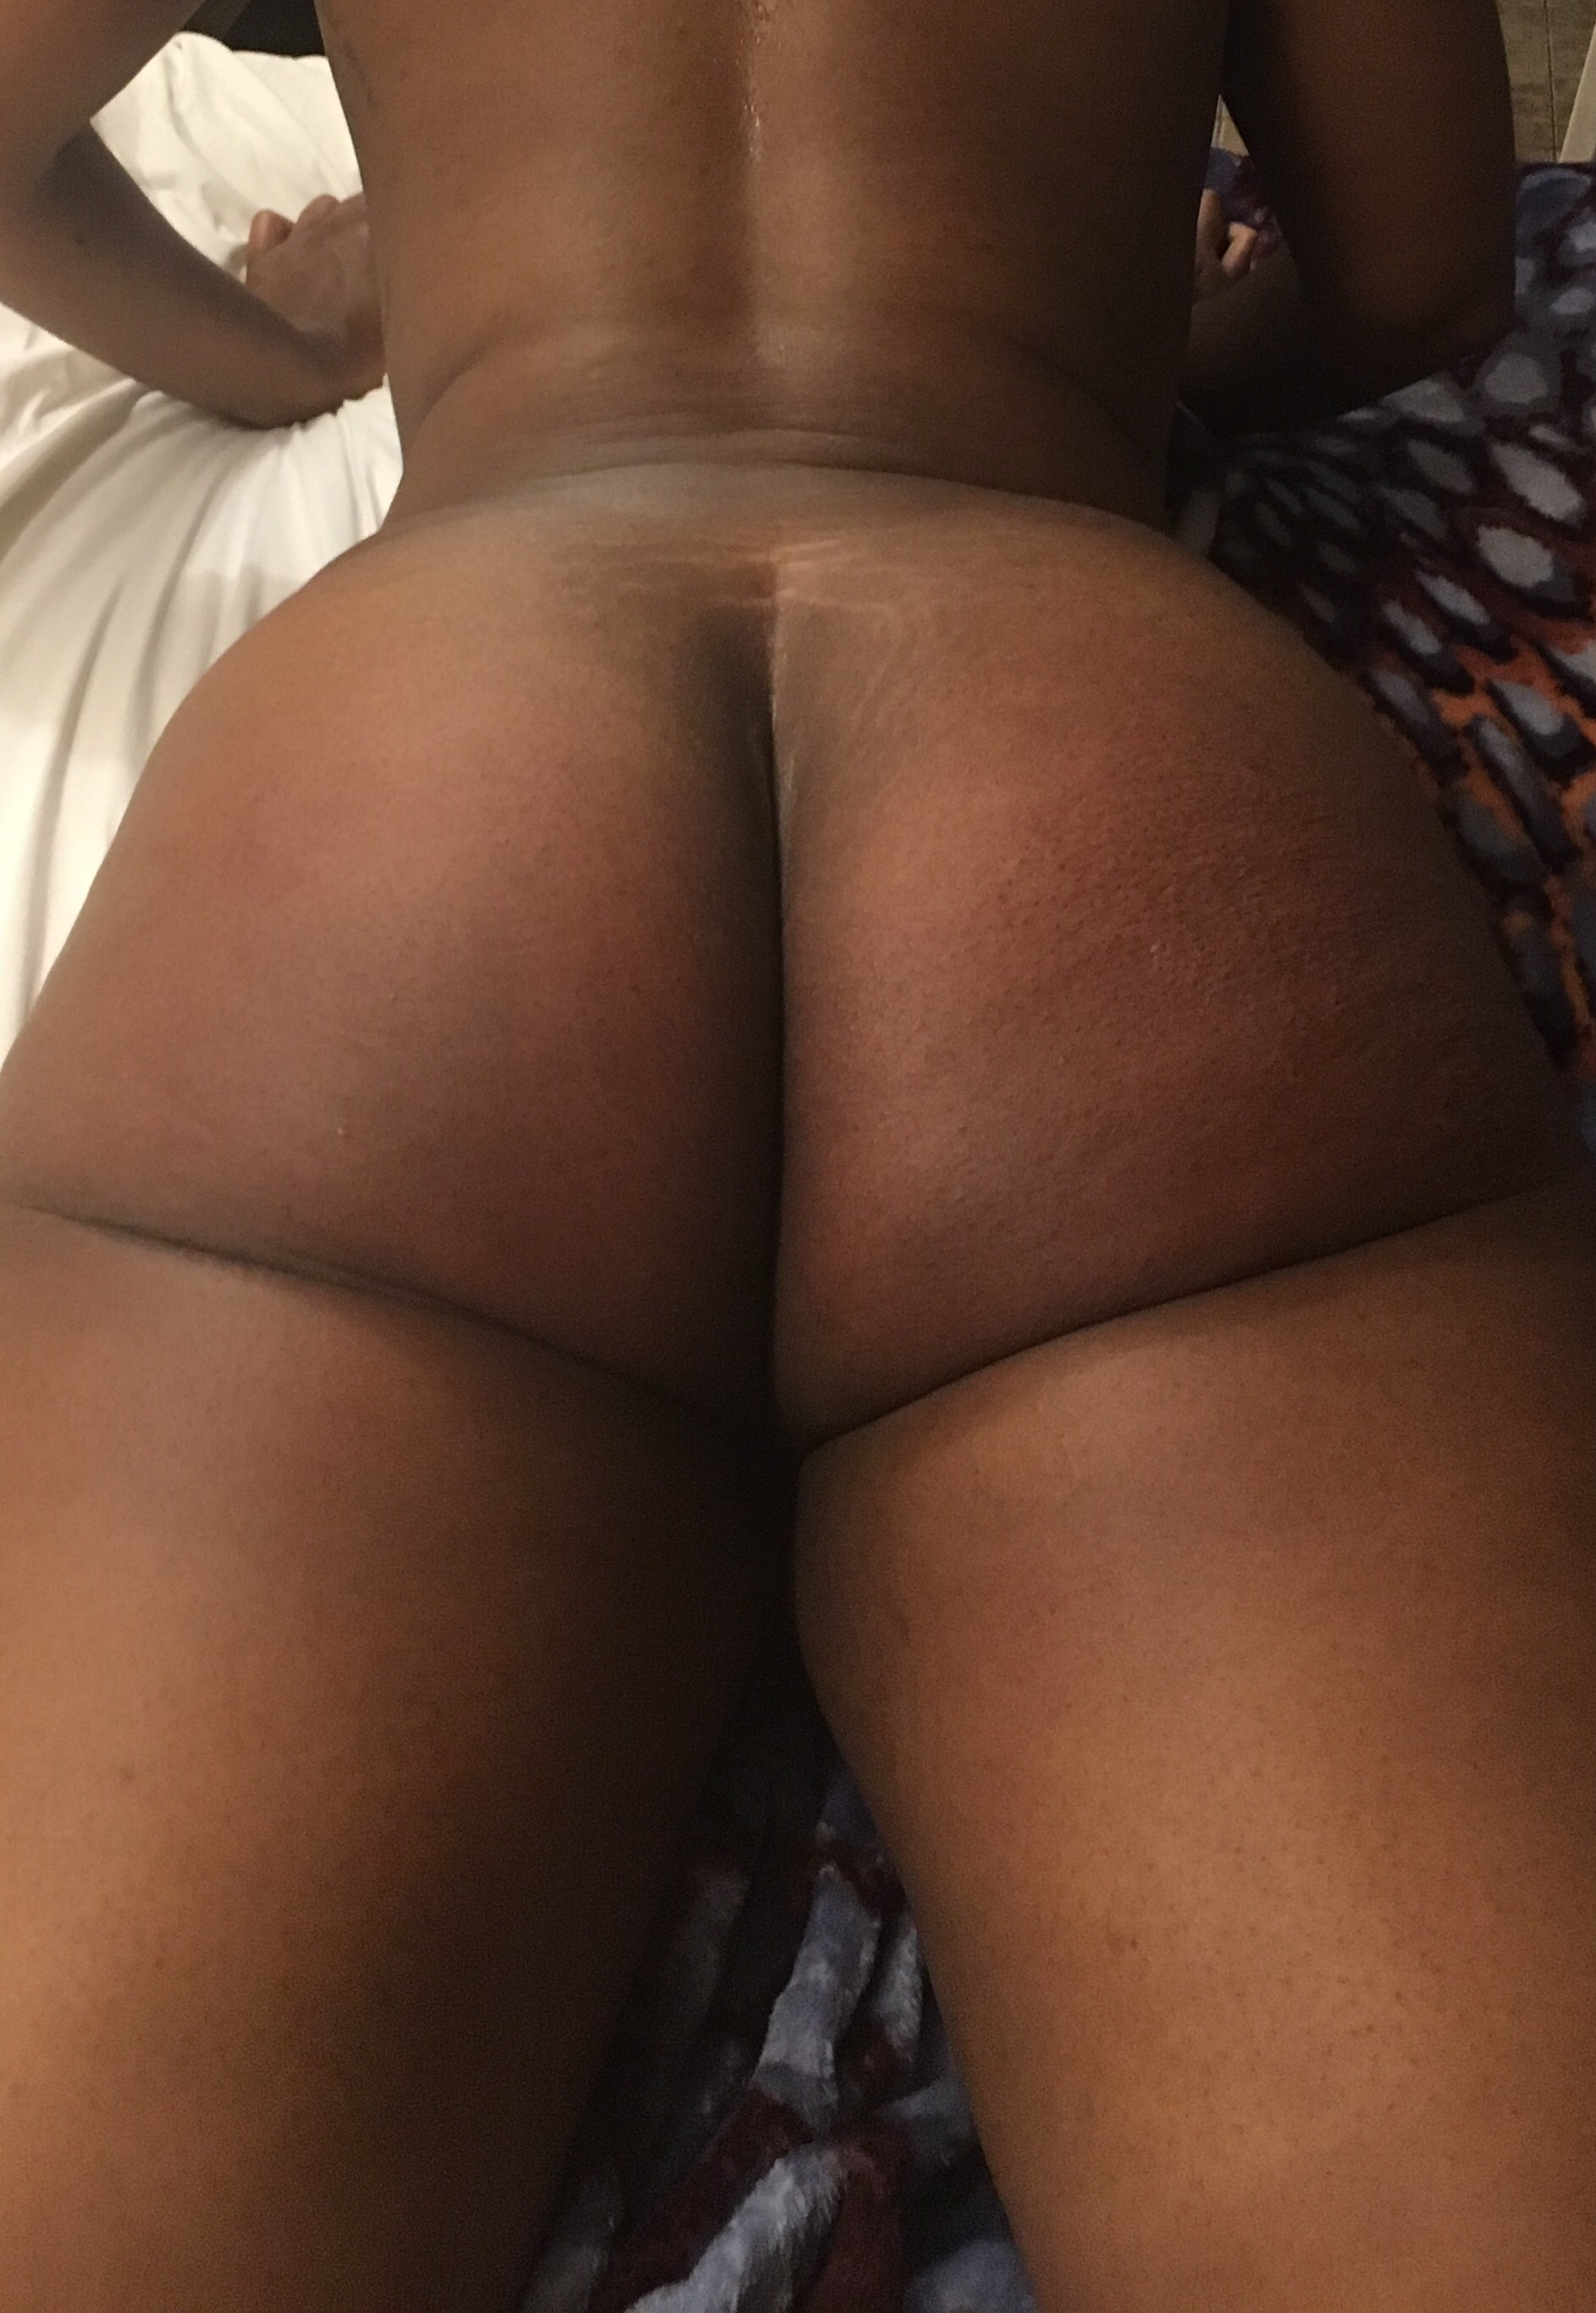 Cara, naked, lying down on a bed, bottom a little swollen after a spanking in post titled Everybody Poops